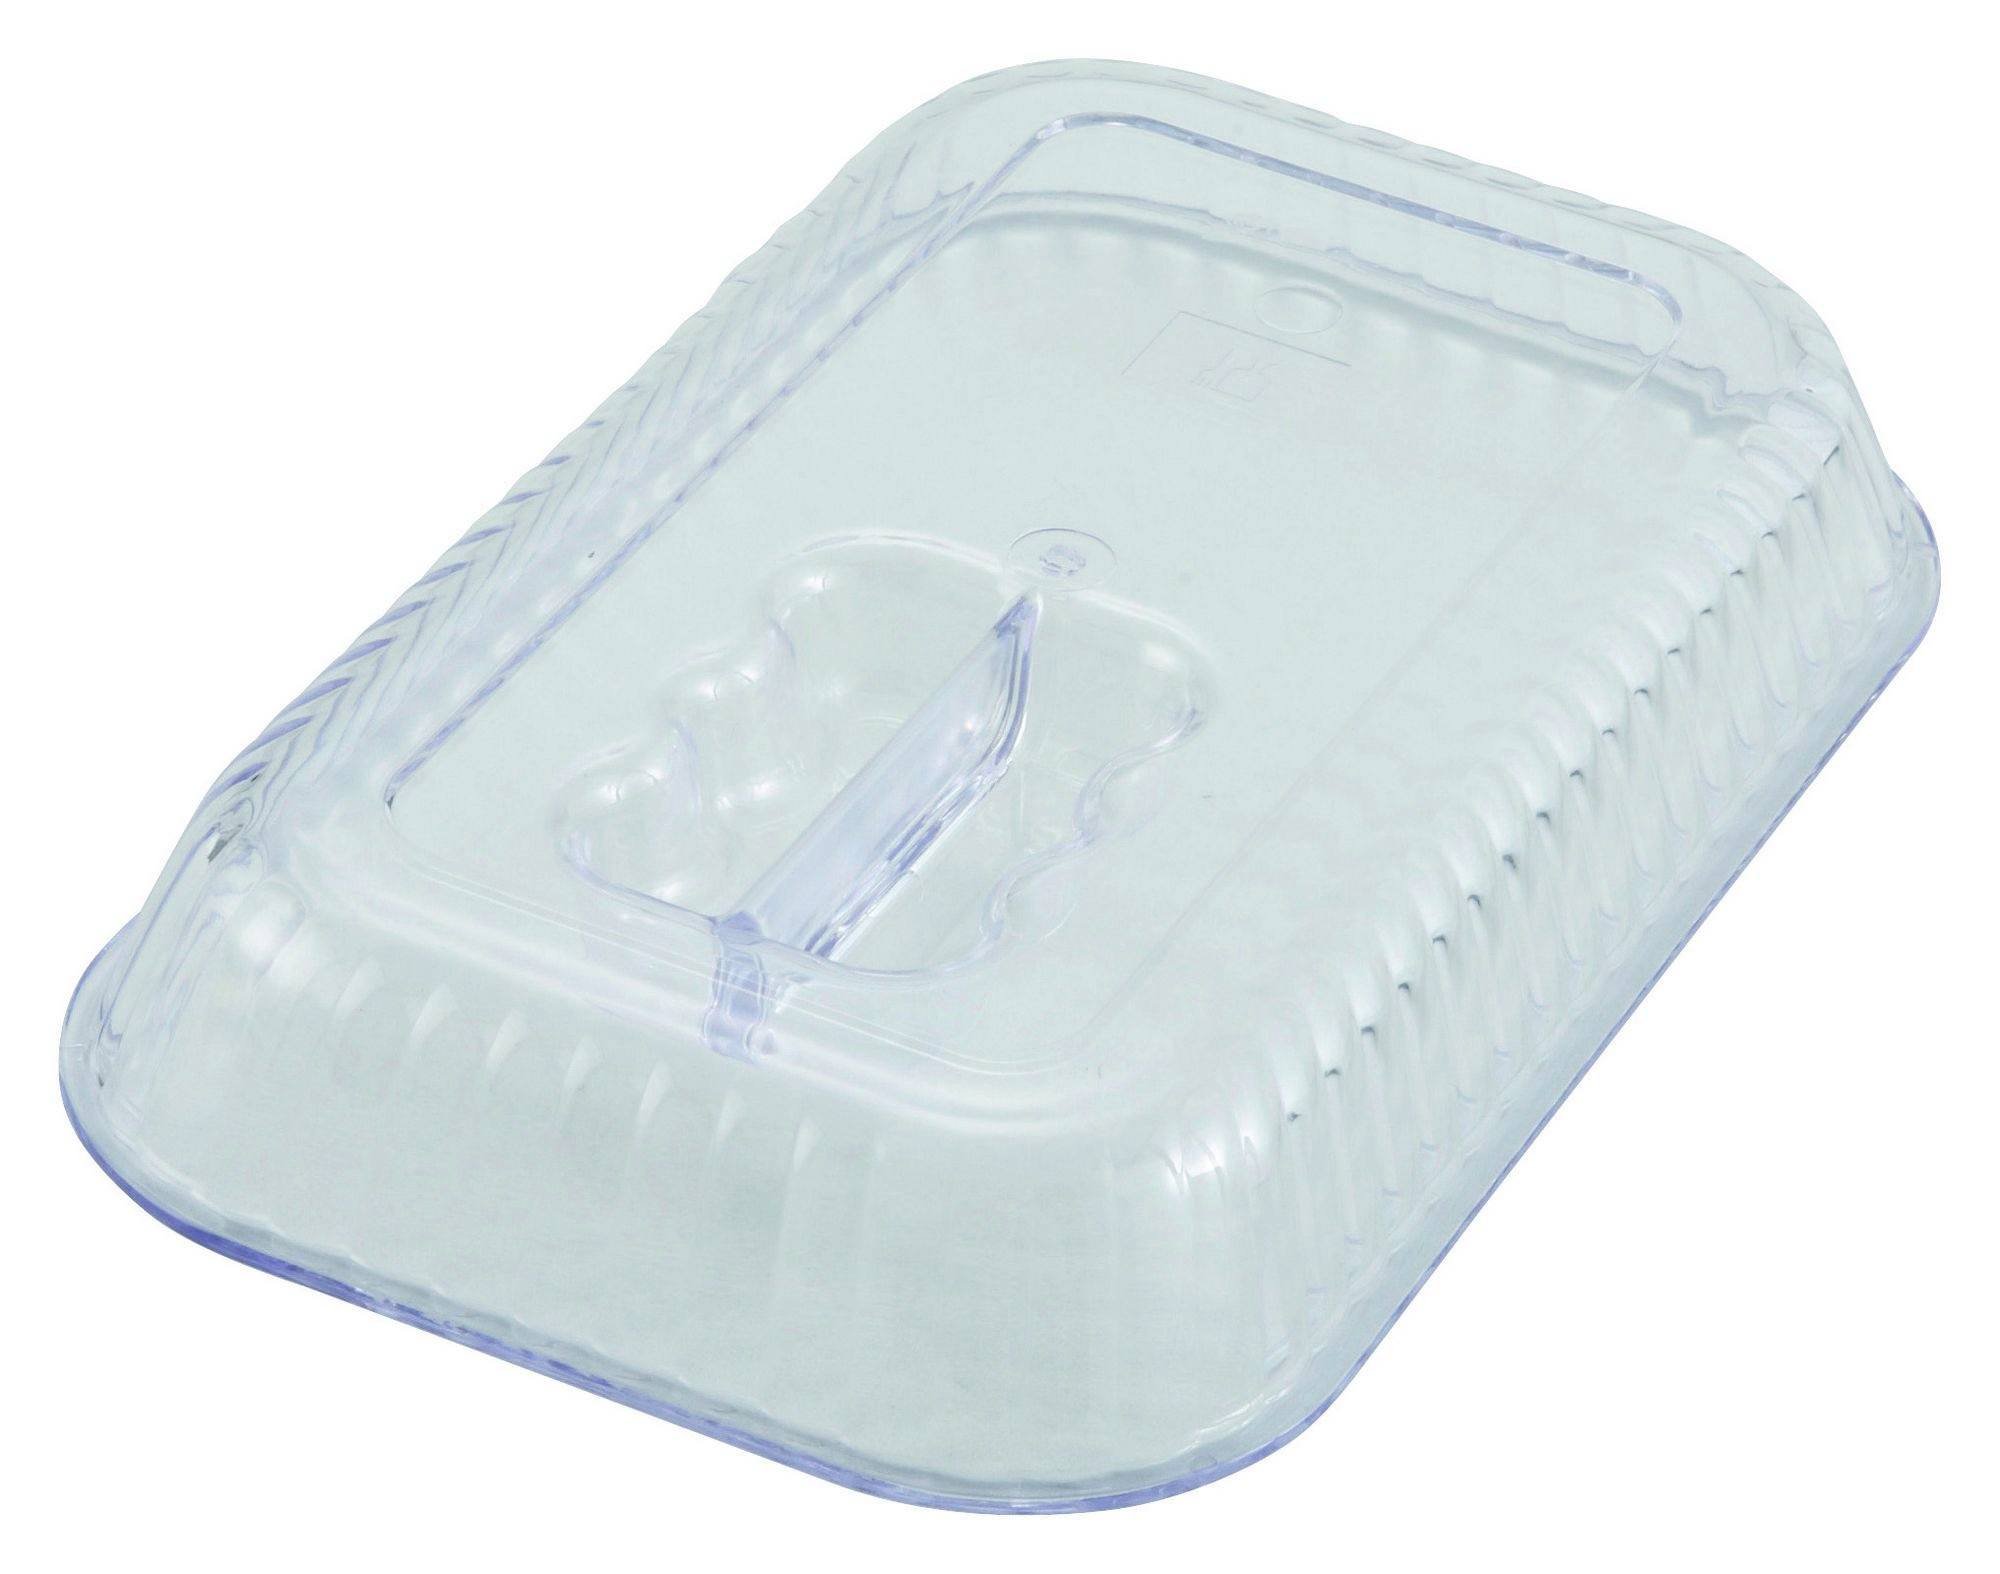 "Winco CRKC-10 Crock Cover for 10"" x 7"" Food Storage Container"